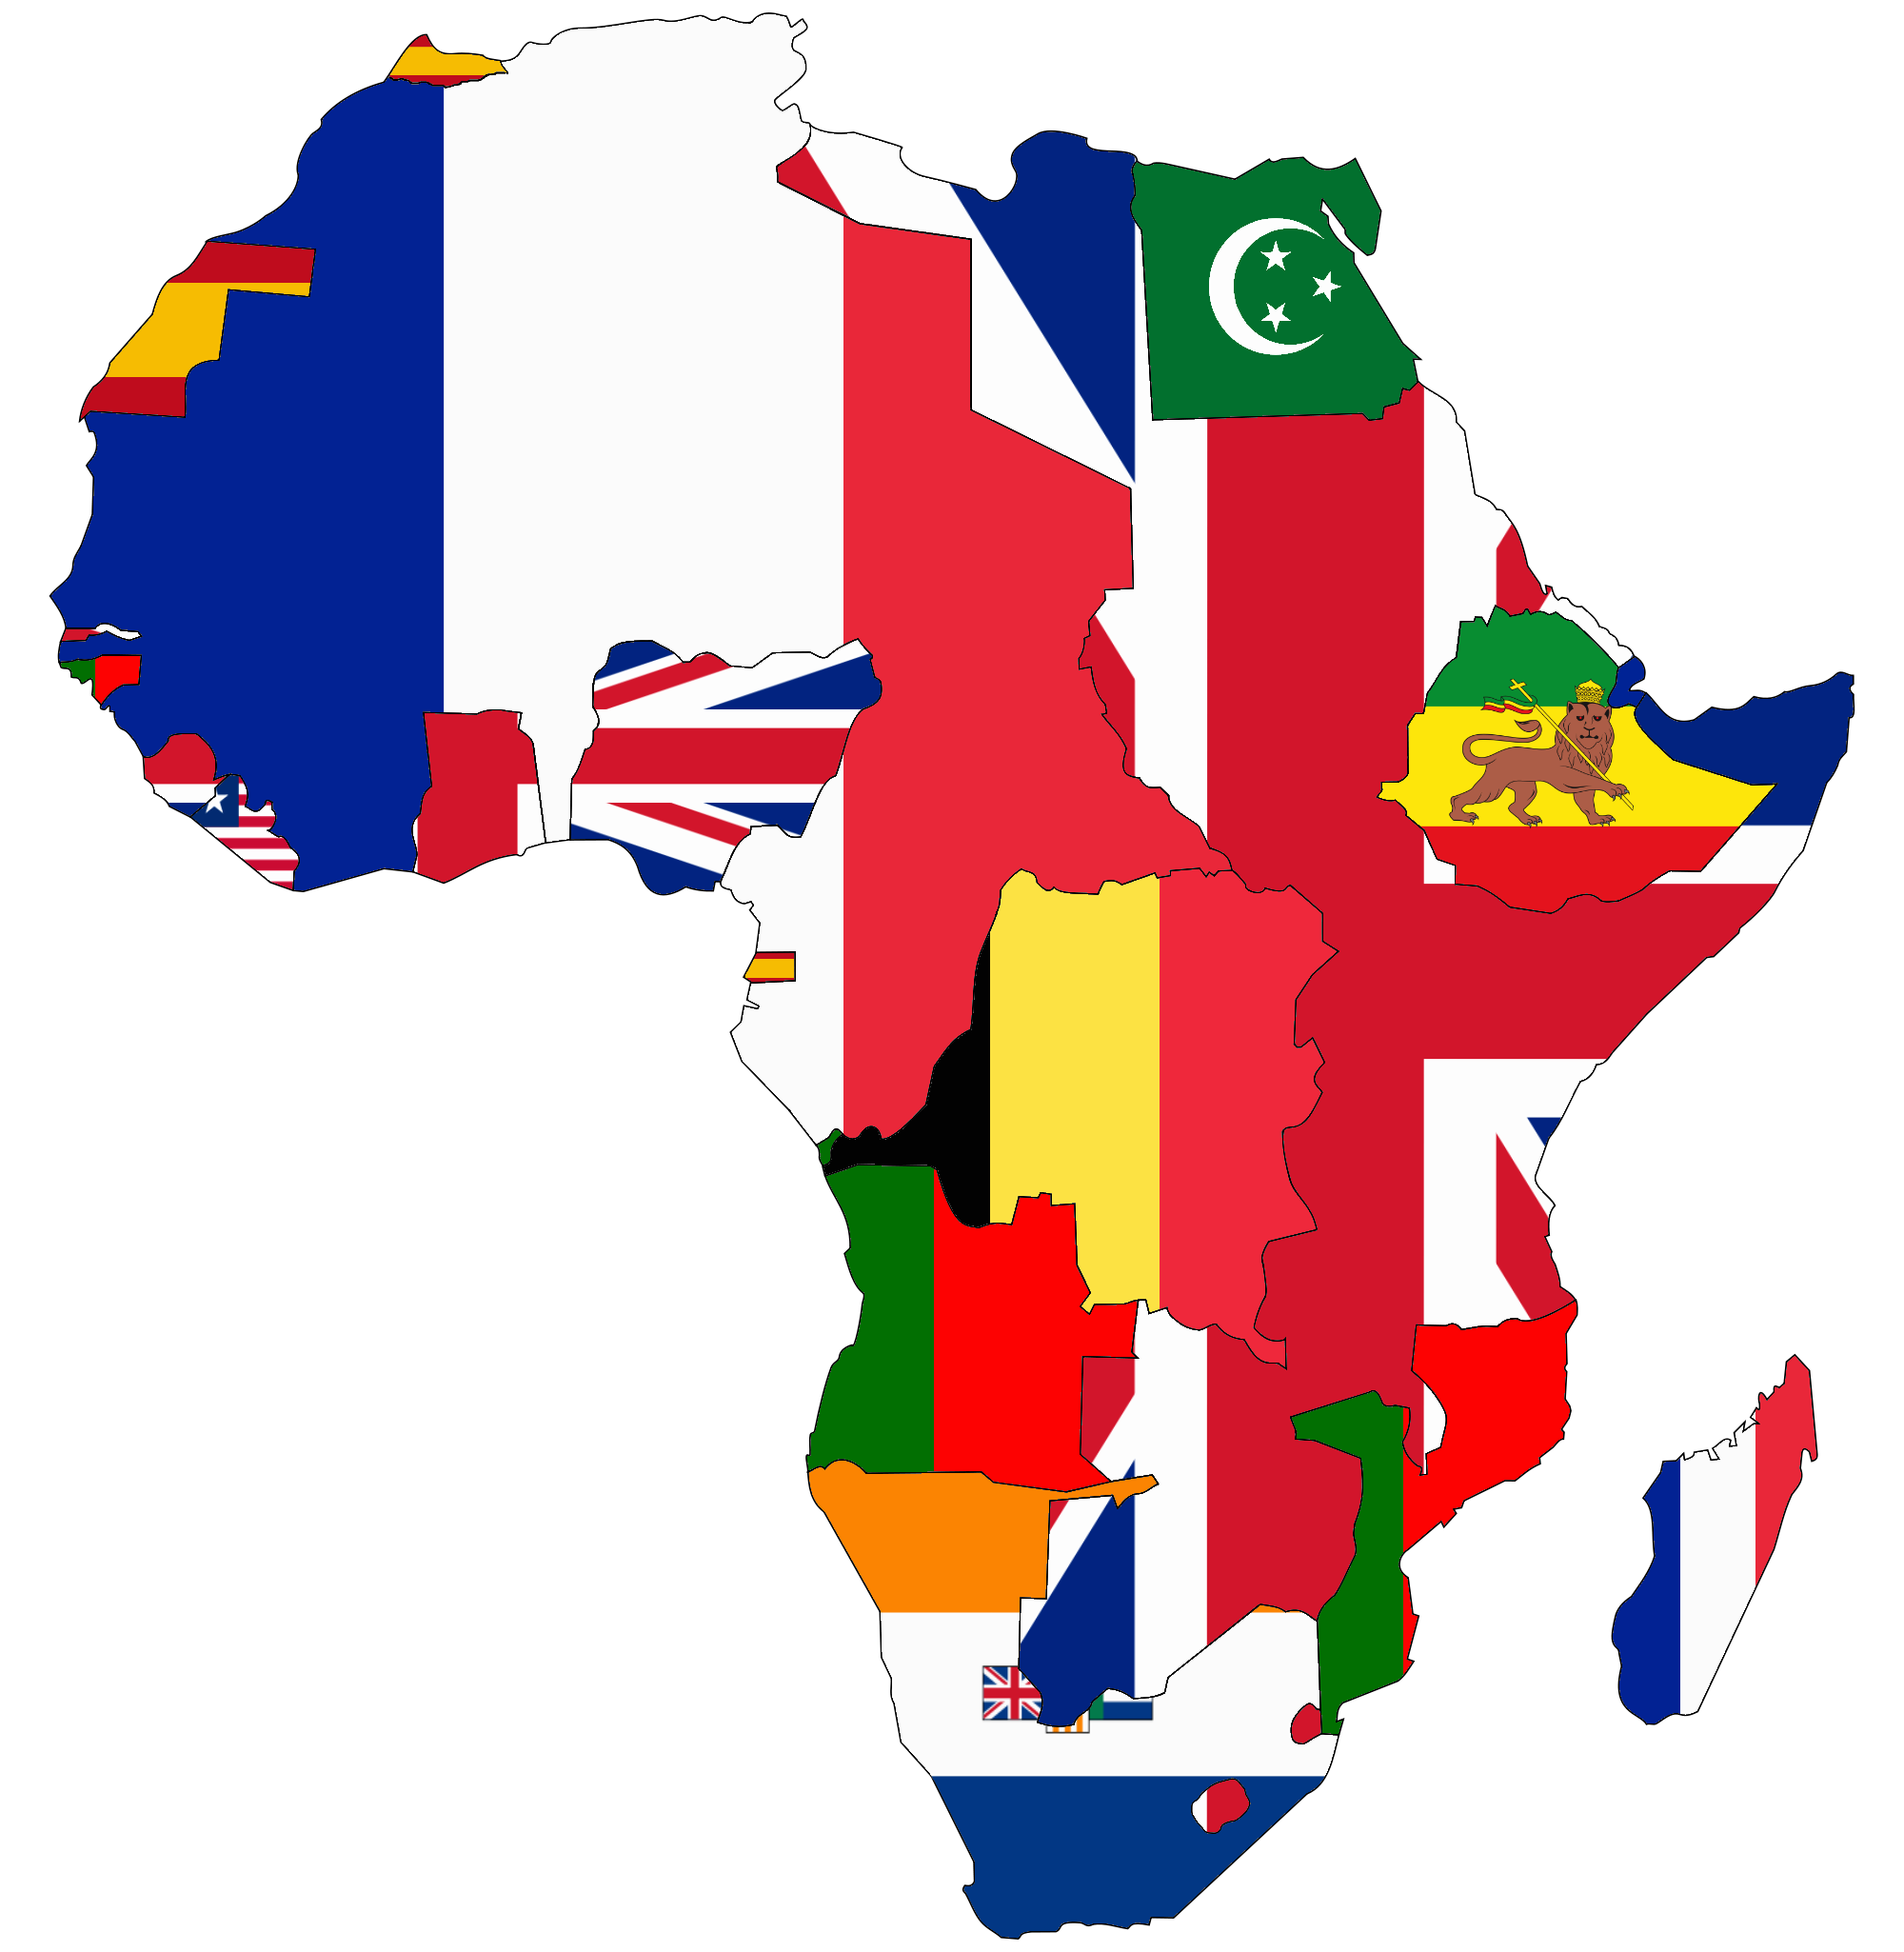 File:Flag map of Colonial Africa (1945).png   Wikimedia Commons